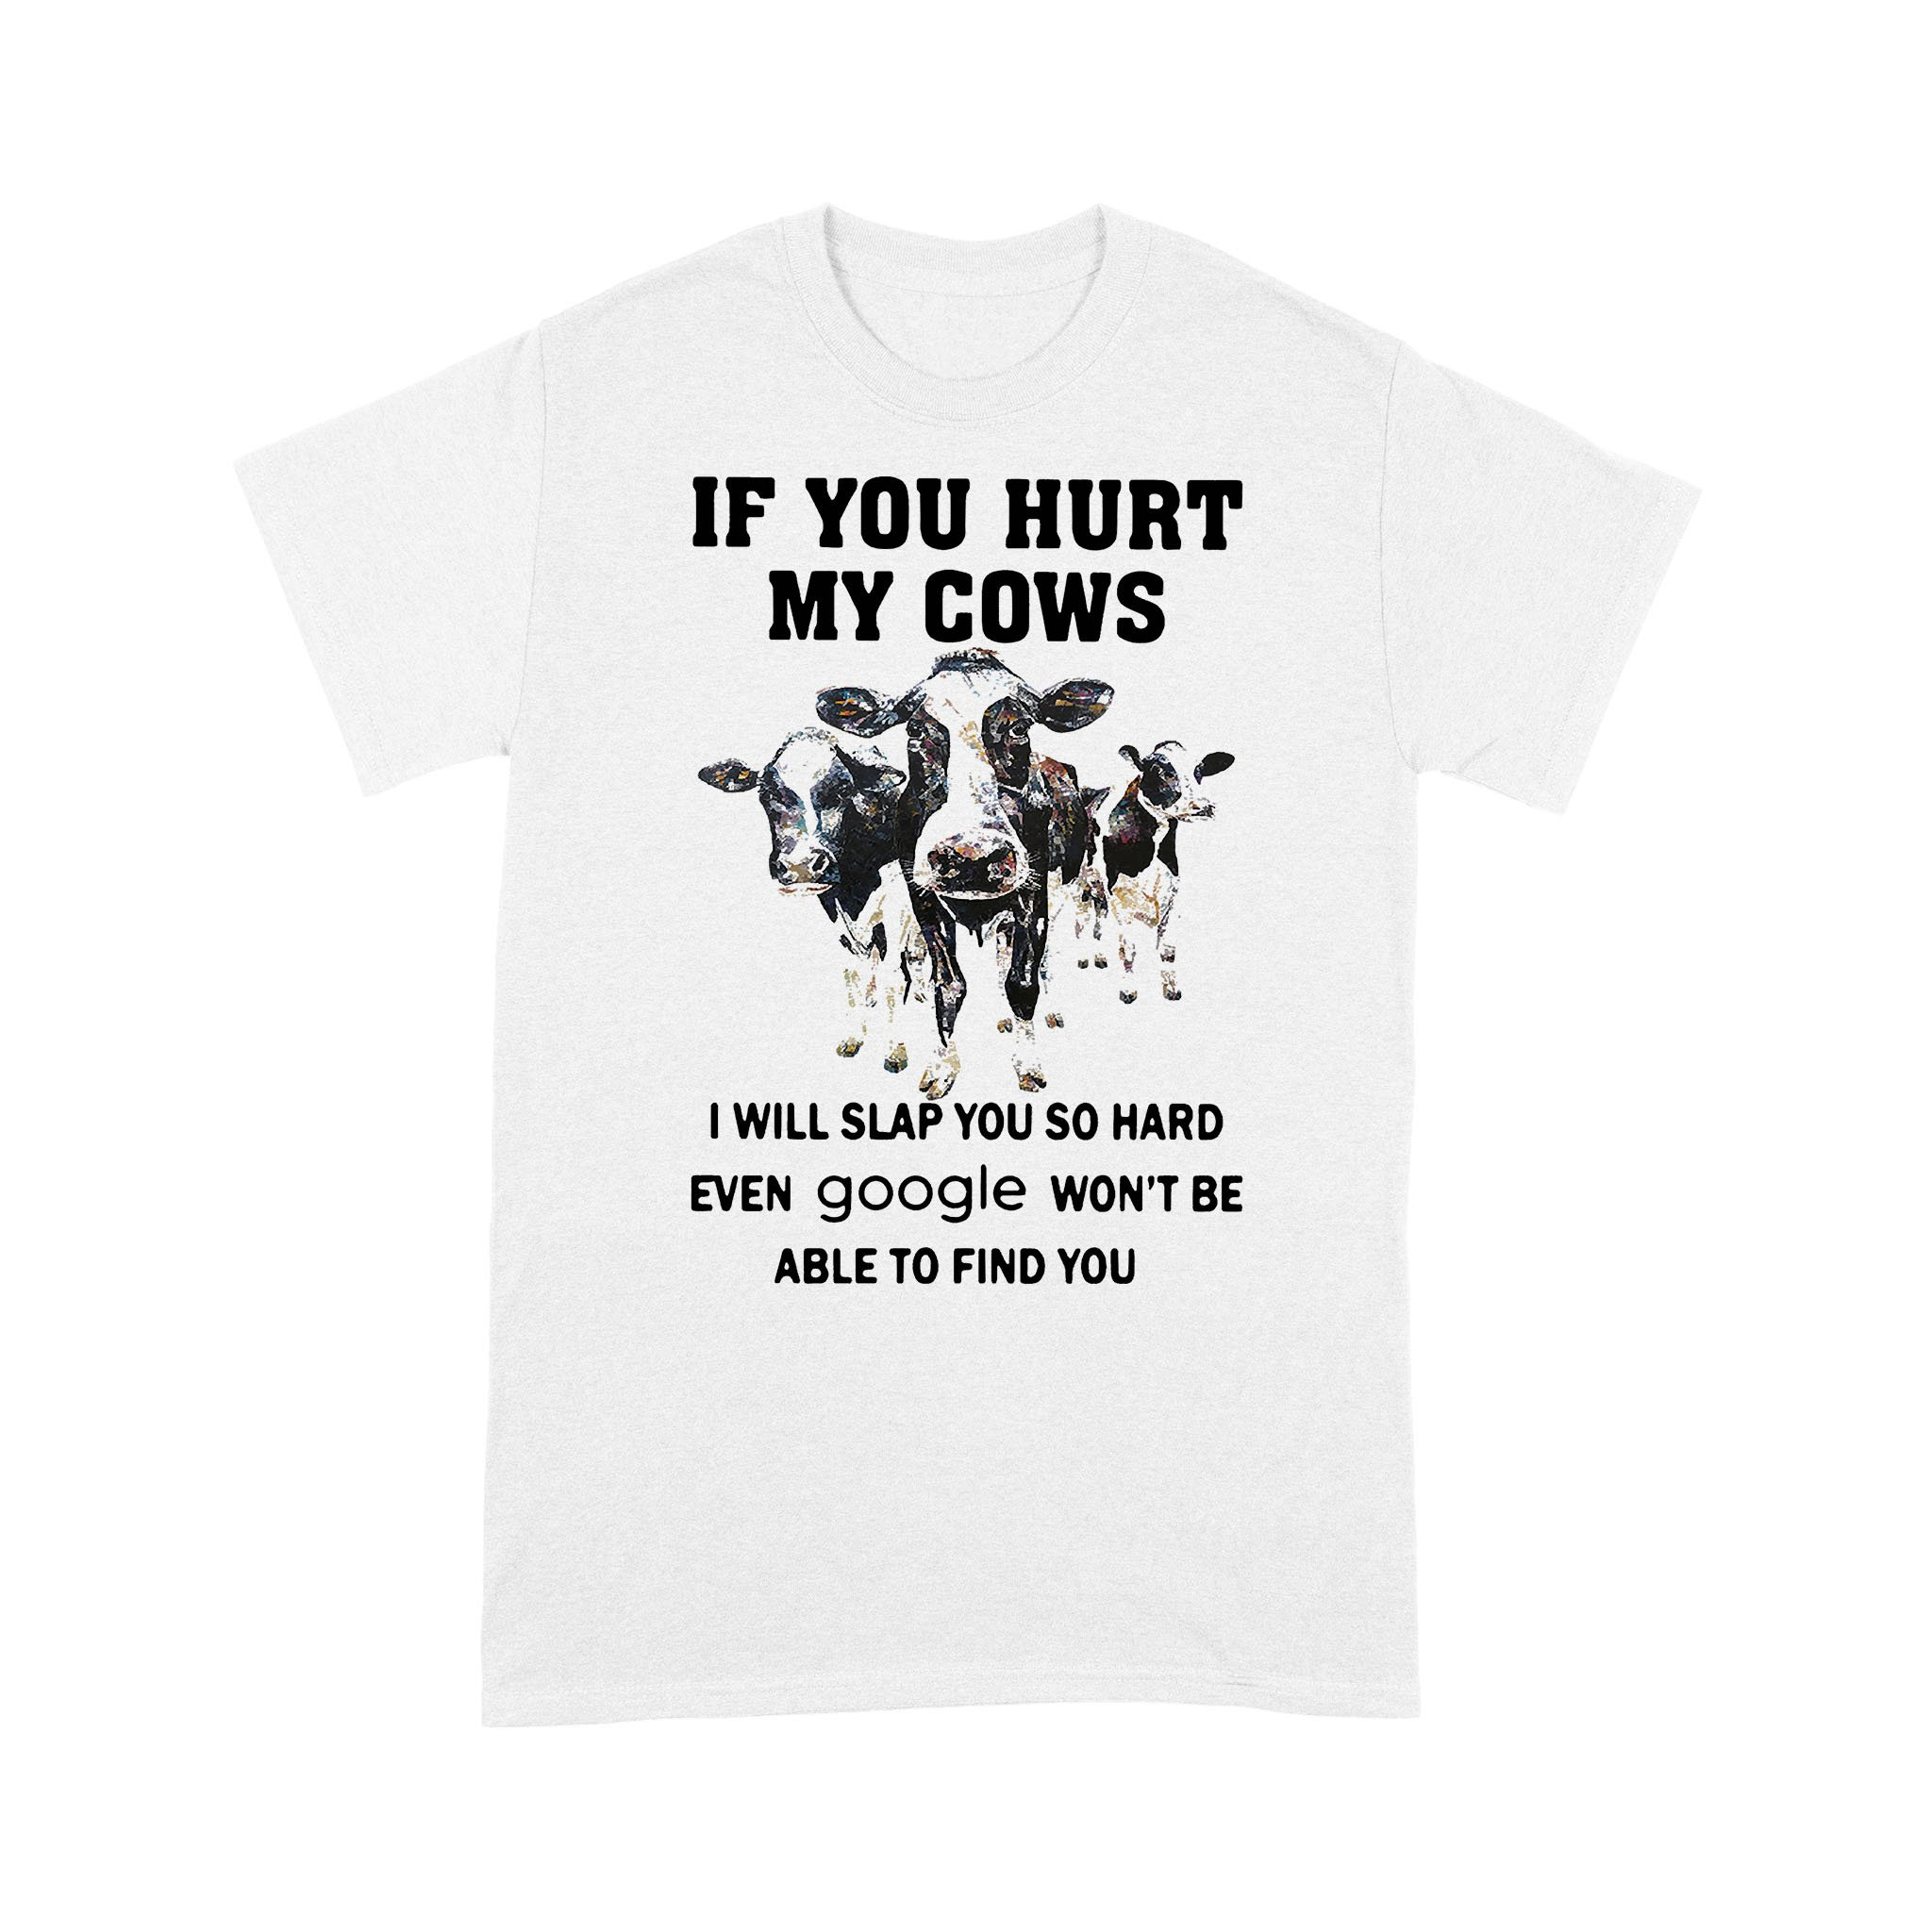 If You Hurt My Cows I Will Slap You So Hard T-shirt